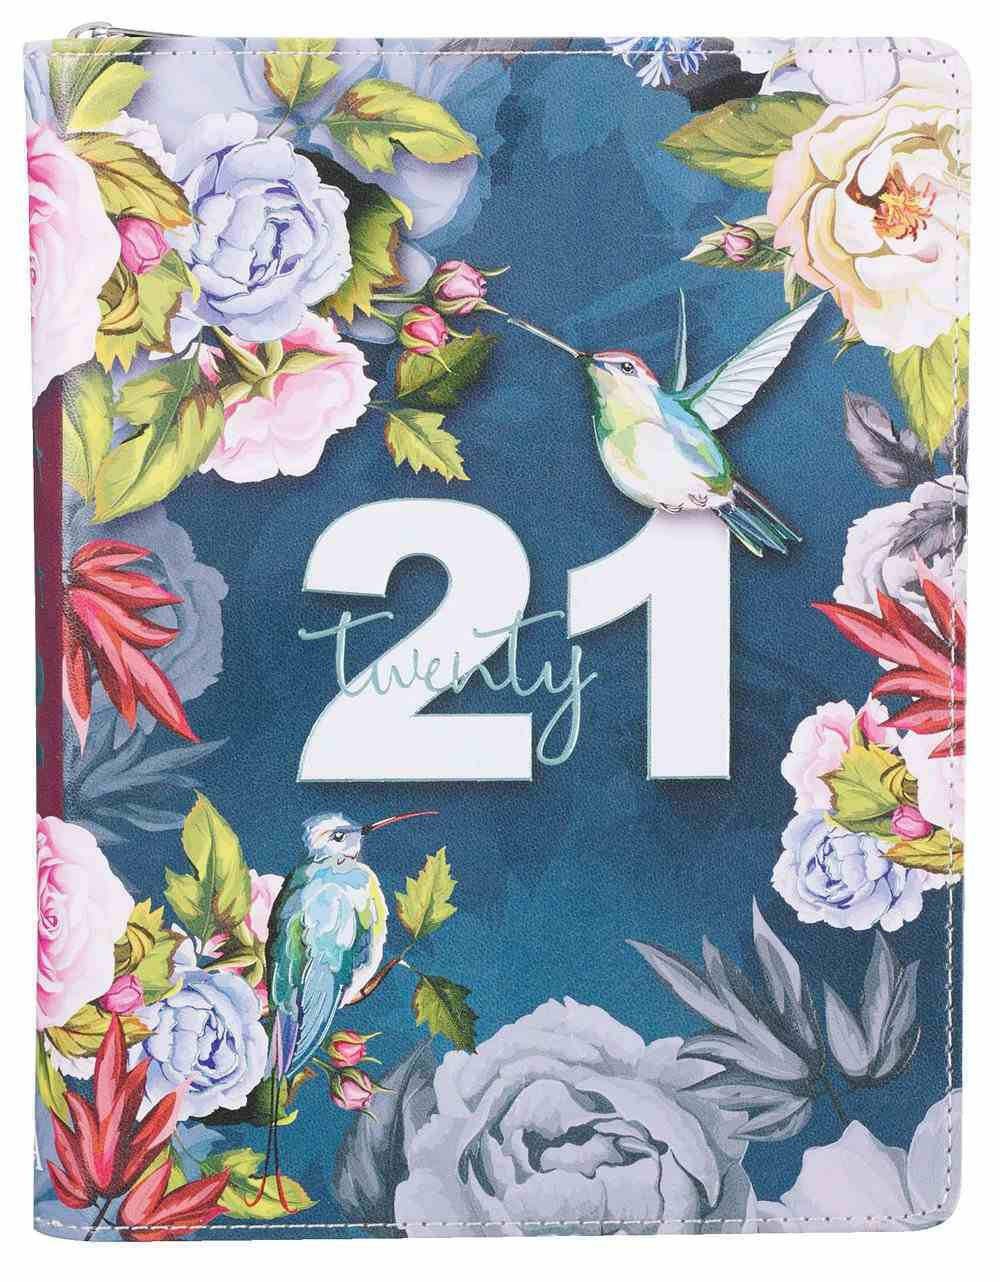 2021 12-Month Daily Diary/Planner For Women (Zippered) Imitation Leather